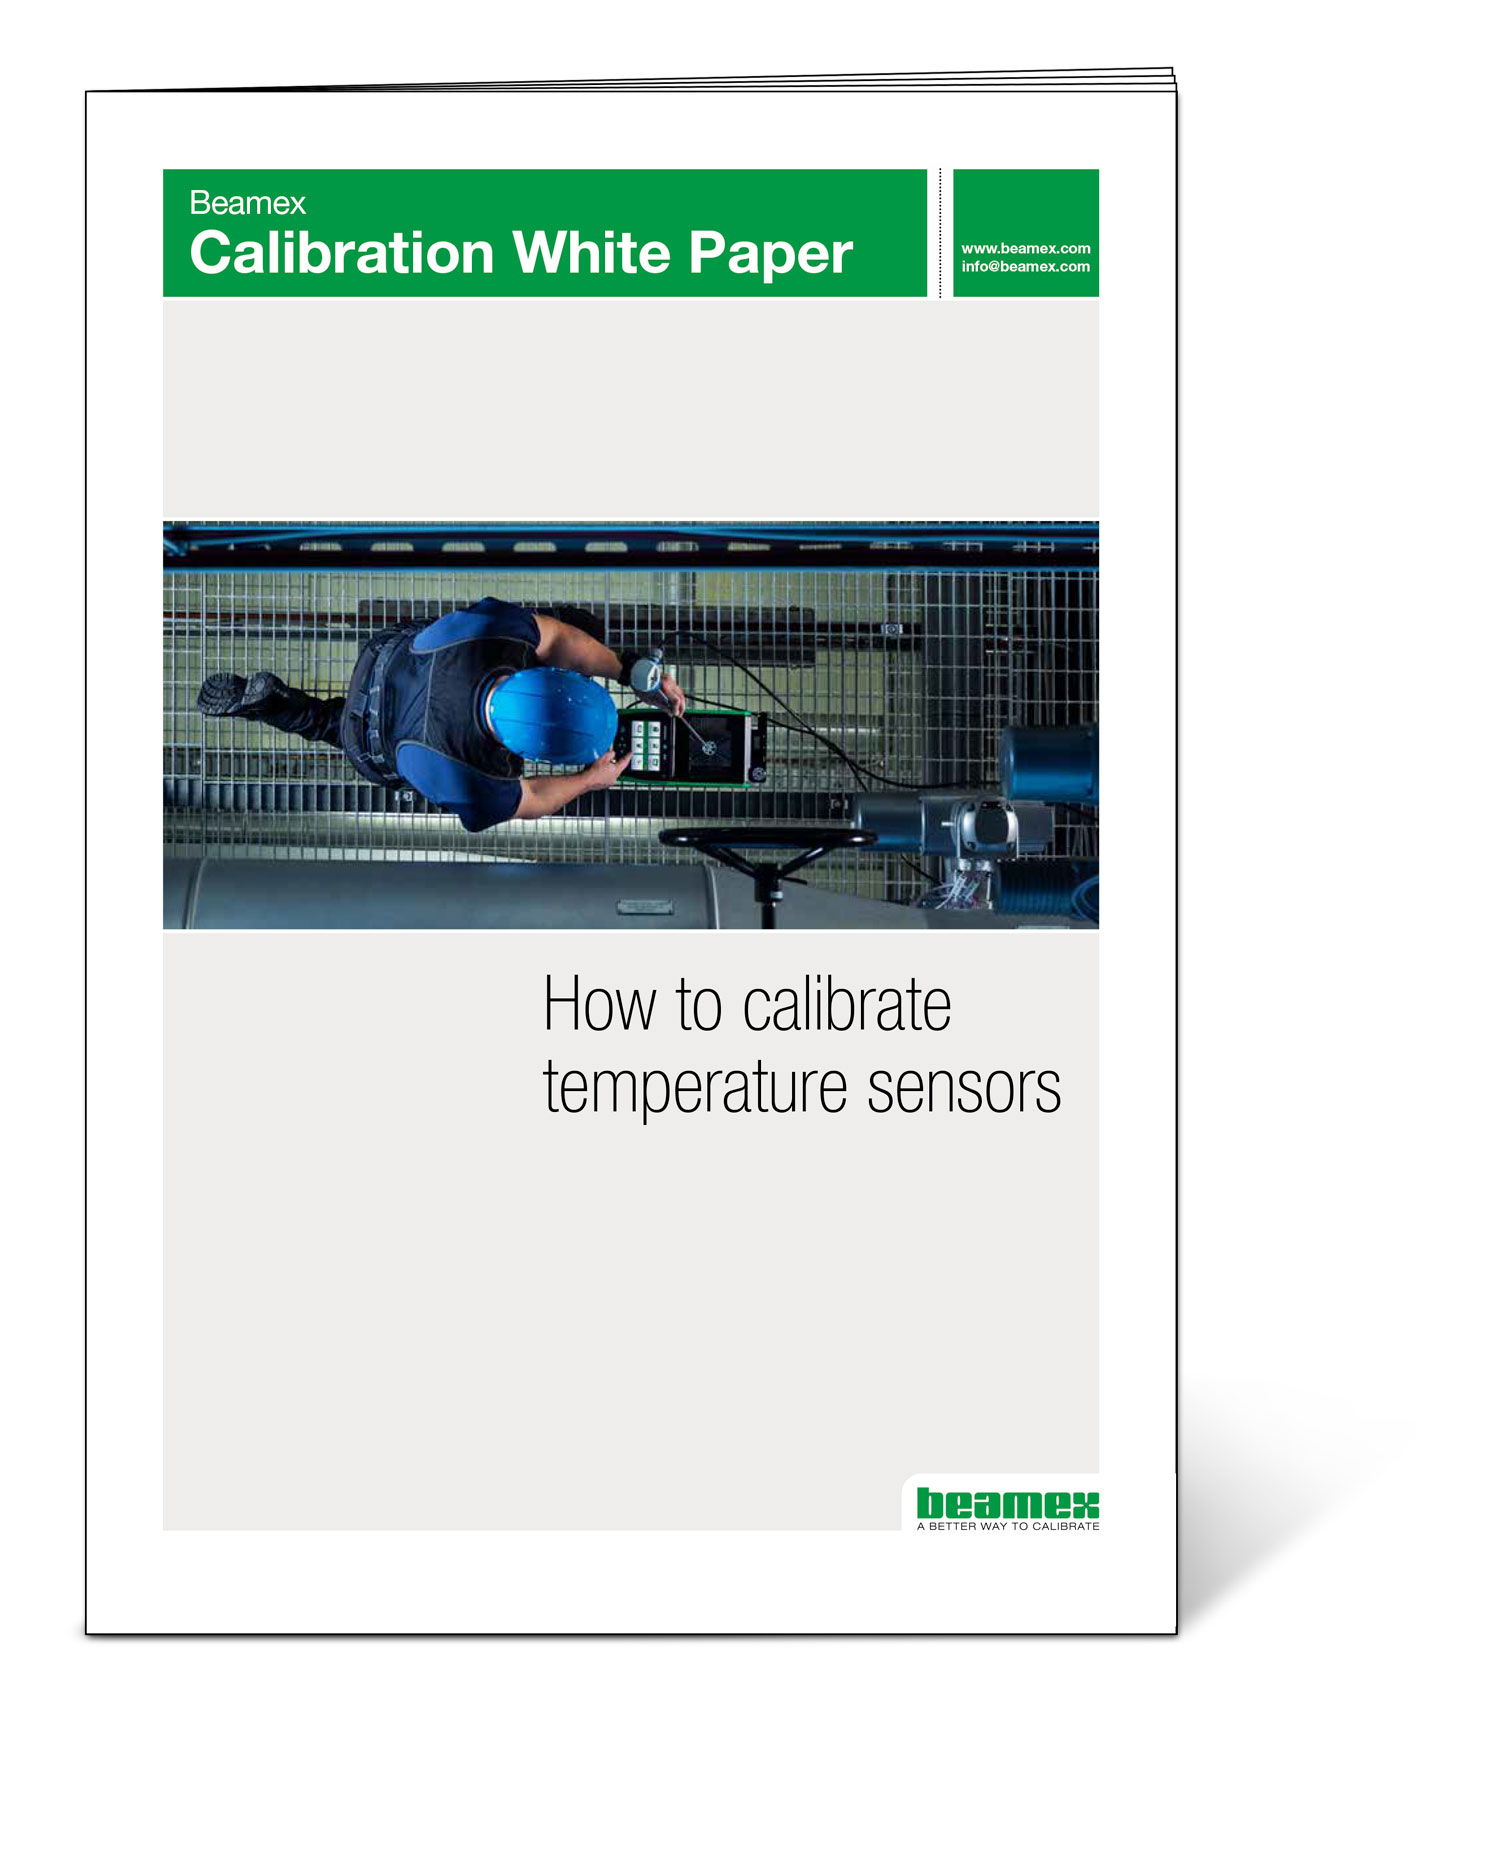 How to calibrate temperature sensors  - Beamex White Paper